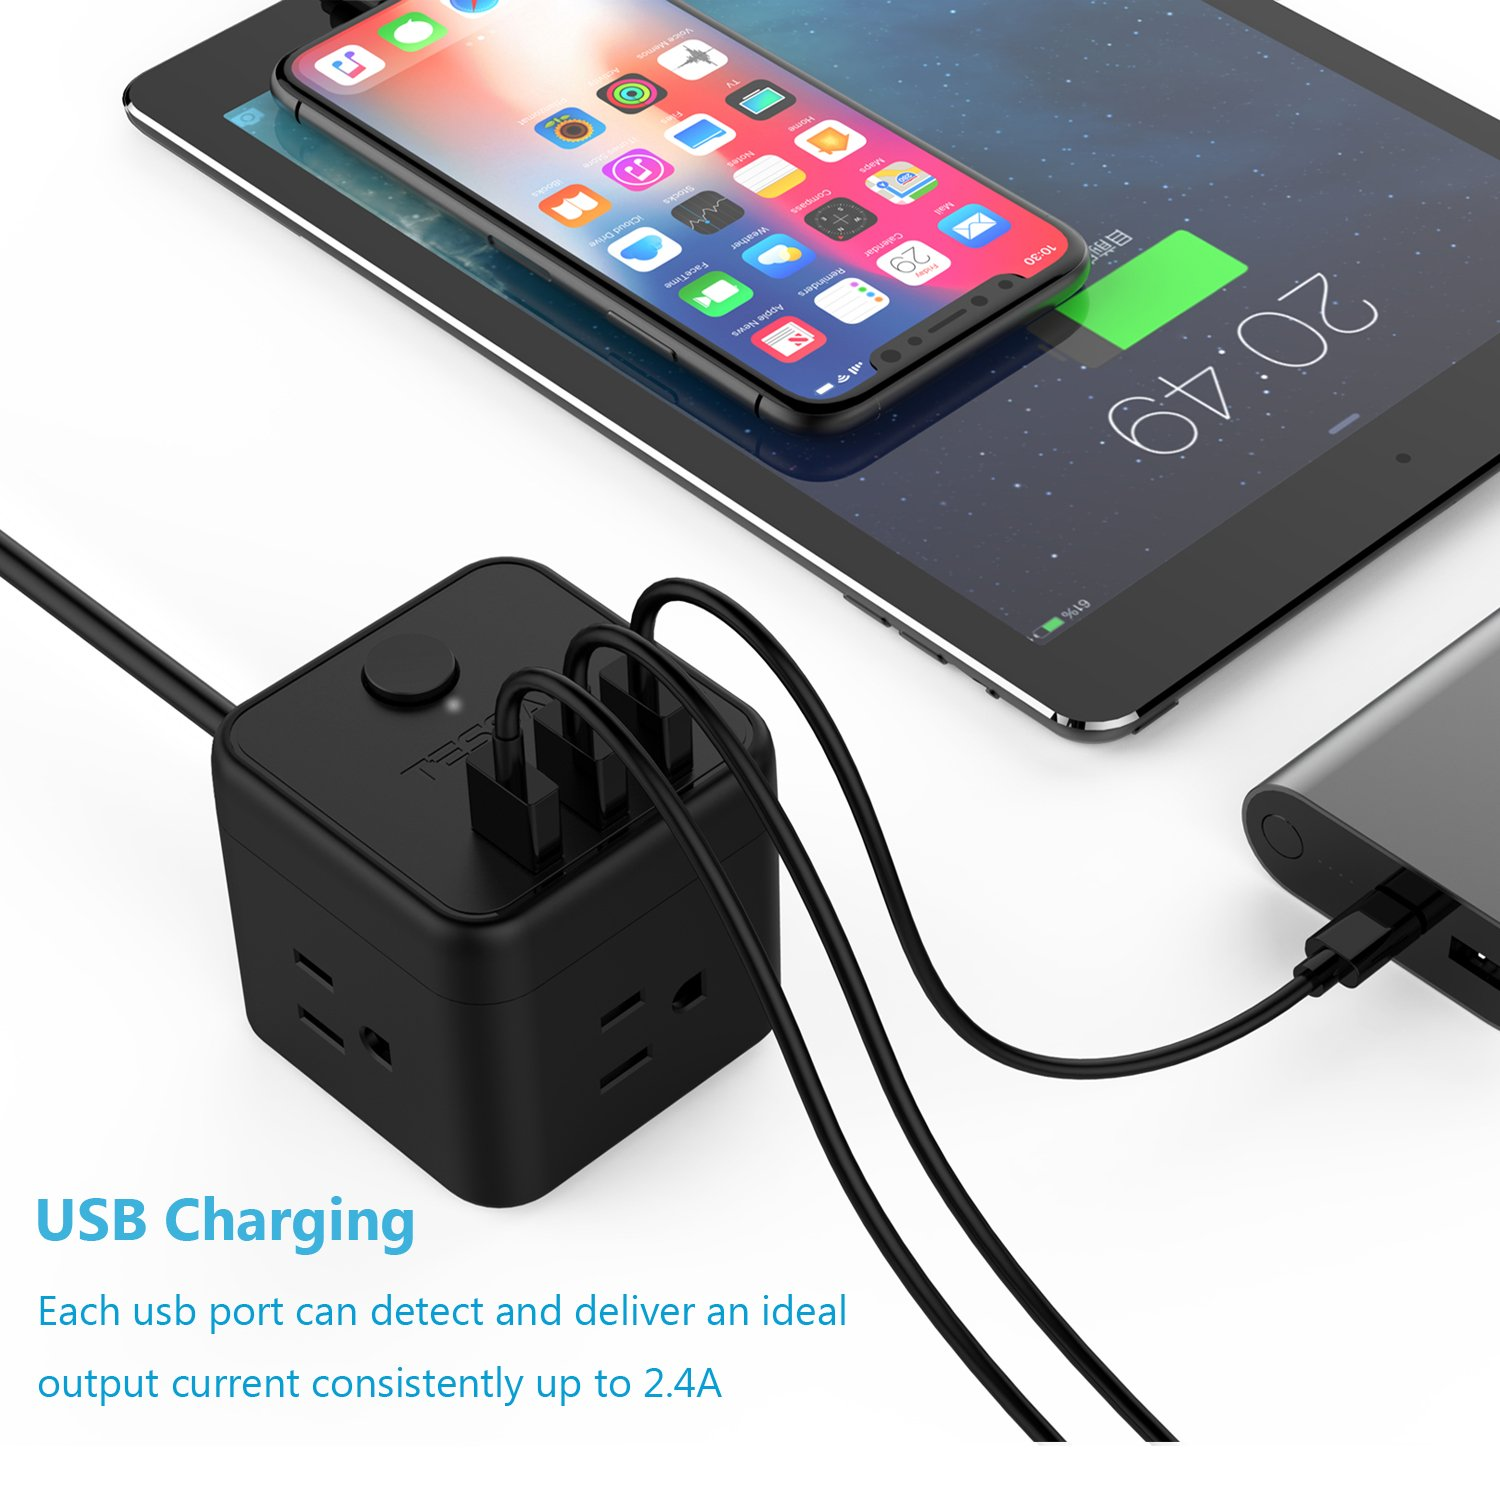 Portable Cube Power Strip with 3 USB Port & Switch Control, 3 Outlet Charging Station with 5 Ft Extension Cord for Nightstand & Desktop & Travel - Black by TESSAN (Image #8)